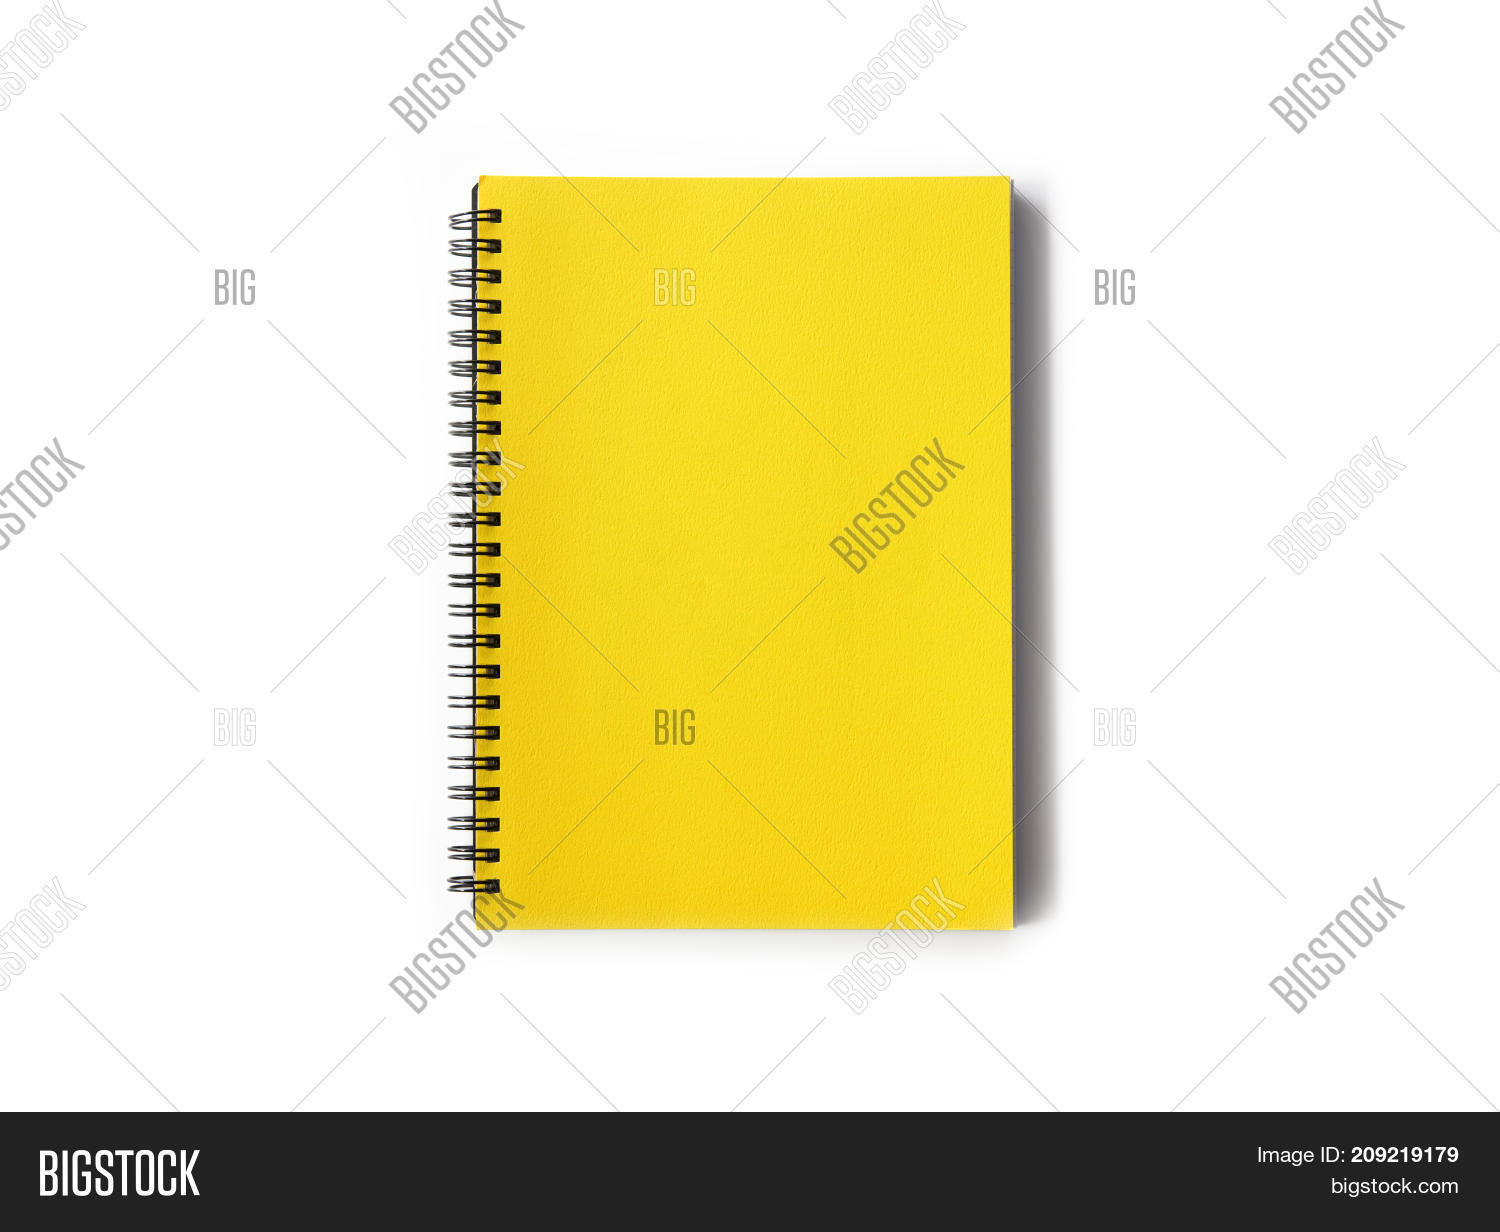 spiral coil notebook yellow cover image photo bigstock